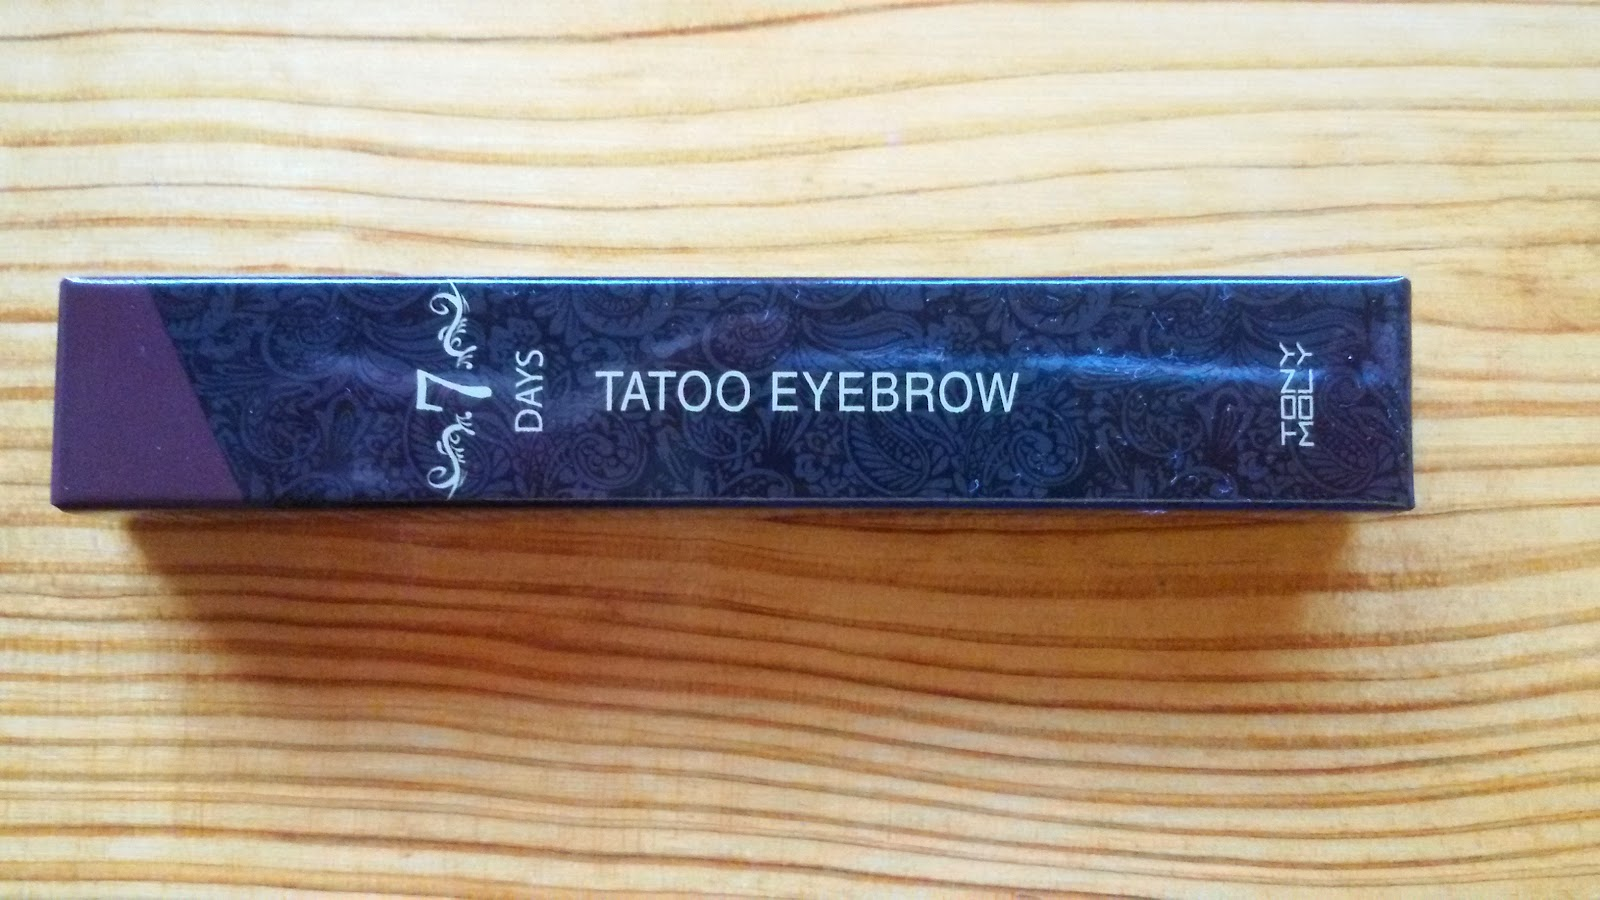 Tatoo Eyebrow от Tony Moly